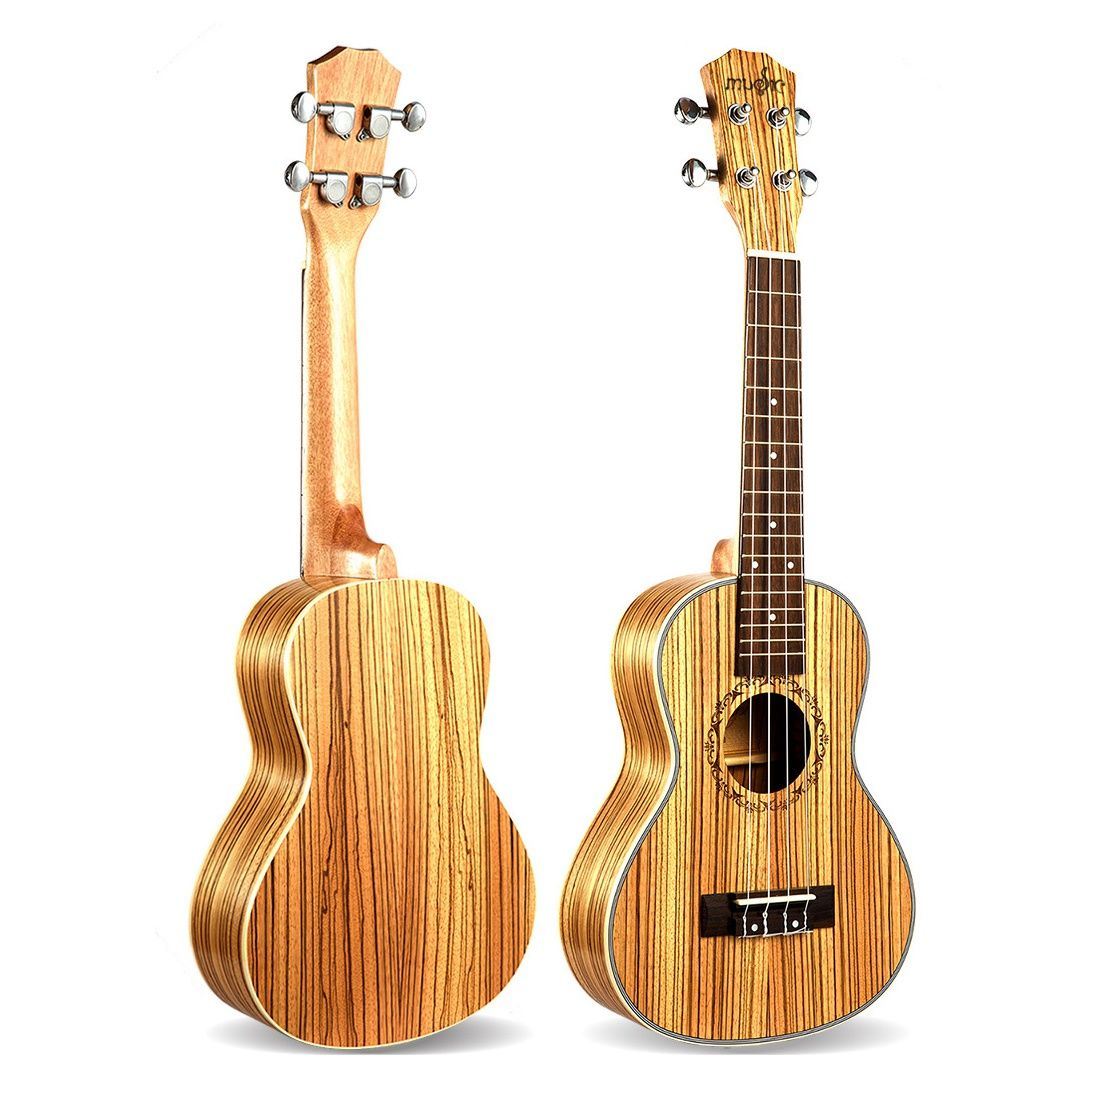 цена на Concert Ukulele 23 Inch 4 Strings Hawaiian Mini Guitar Acoustic Guitar Ukelele guitarra send gifts Musical Stringed Instrument